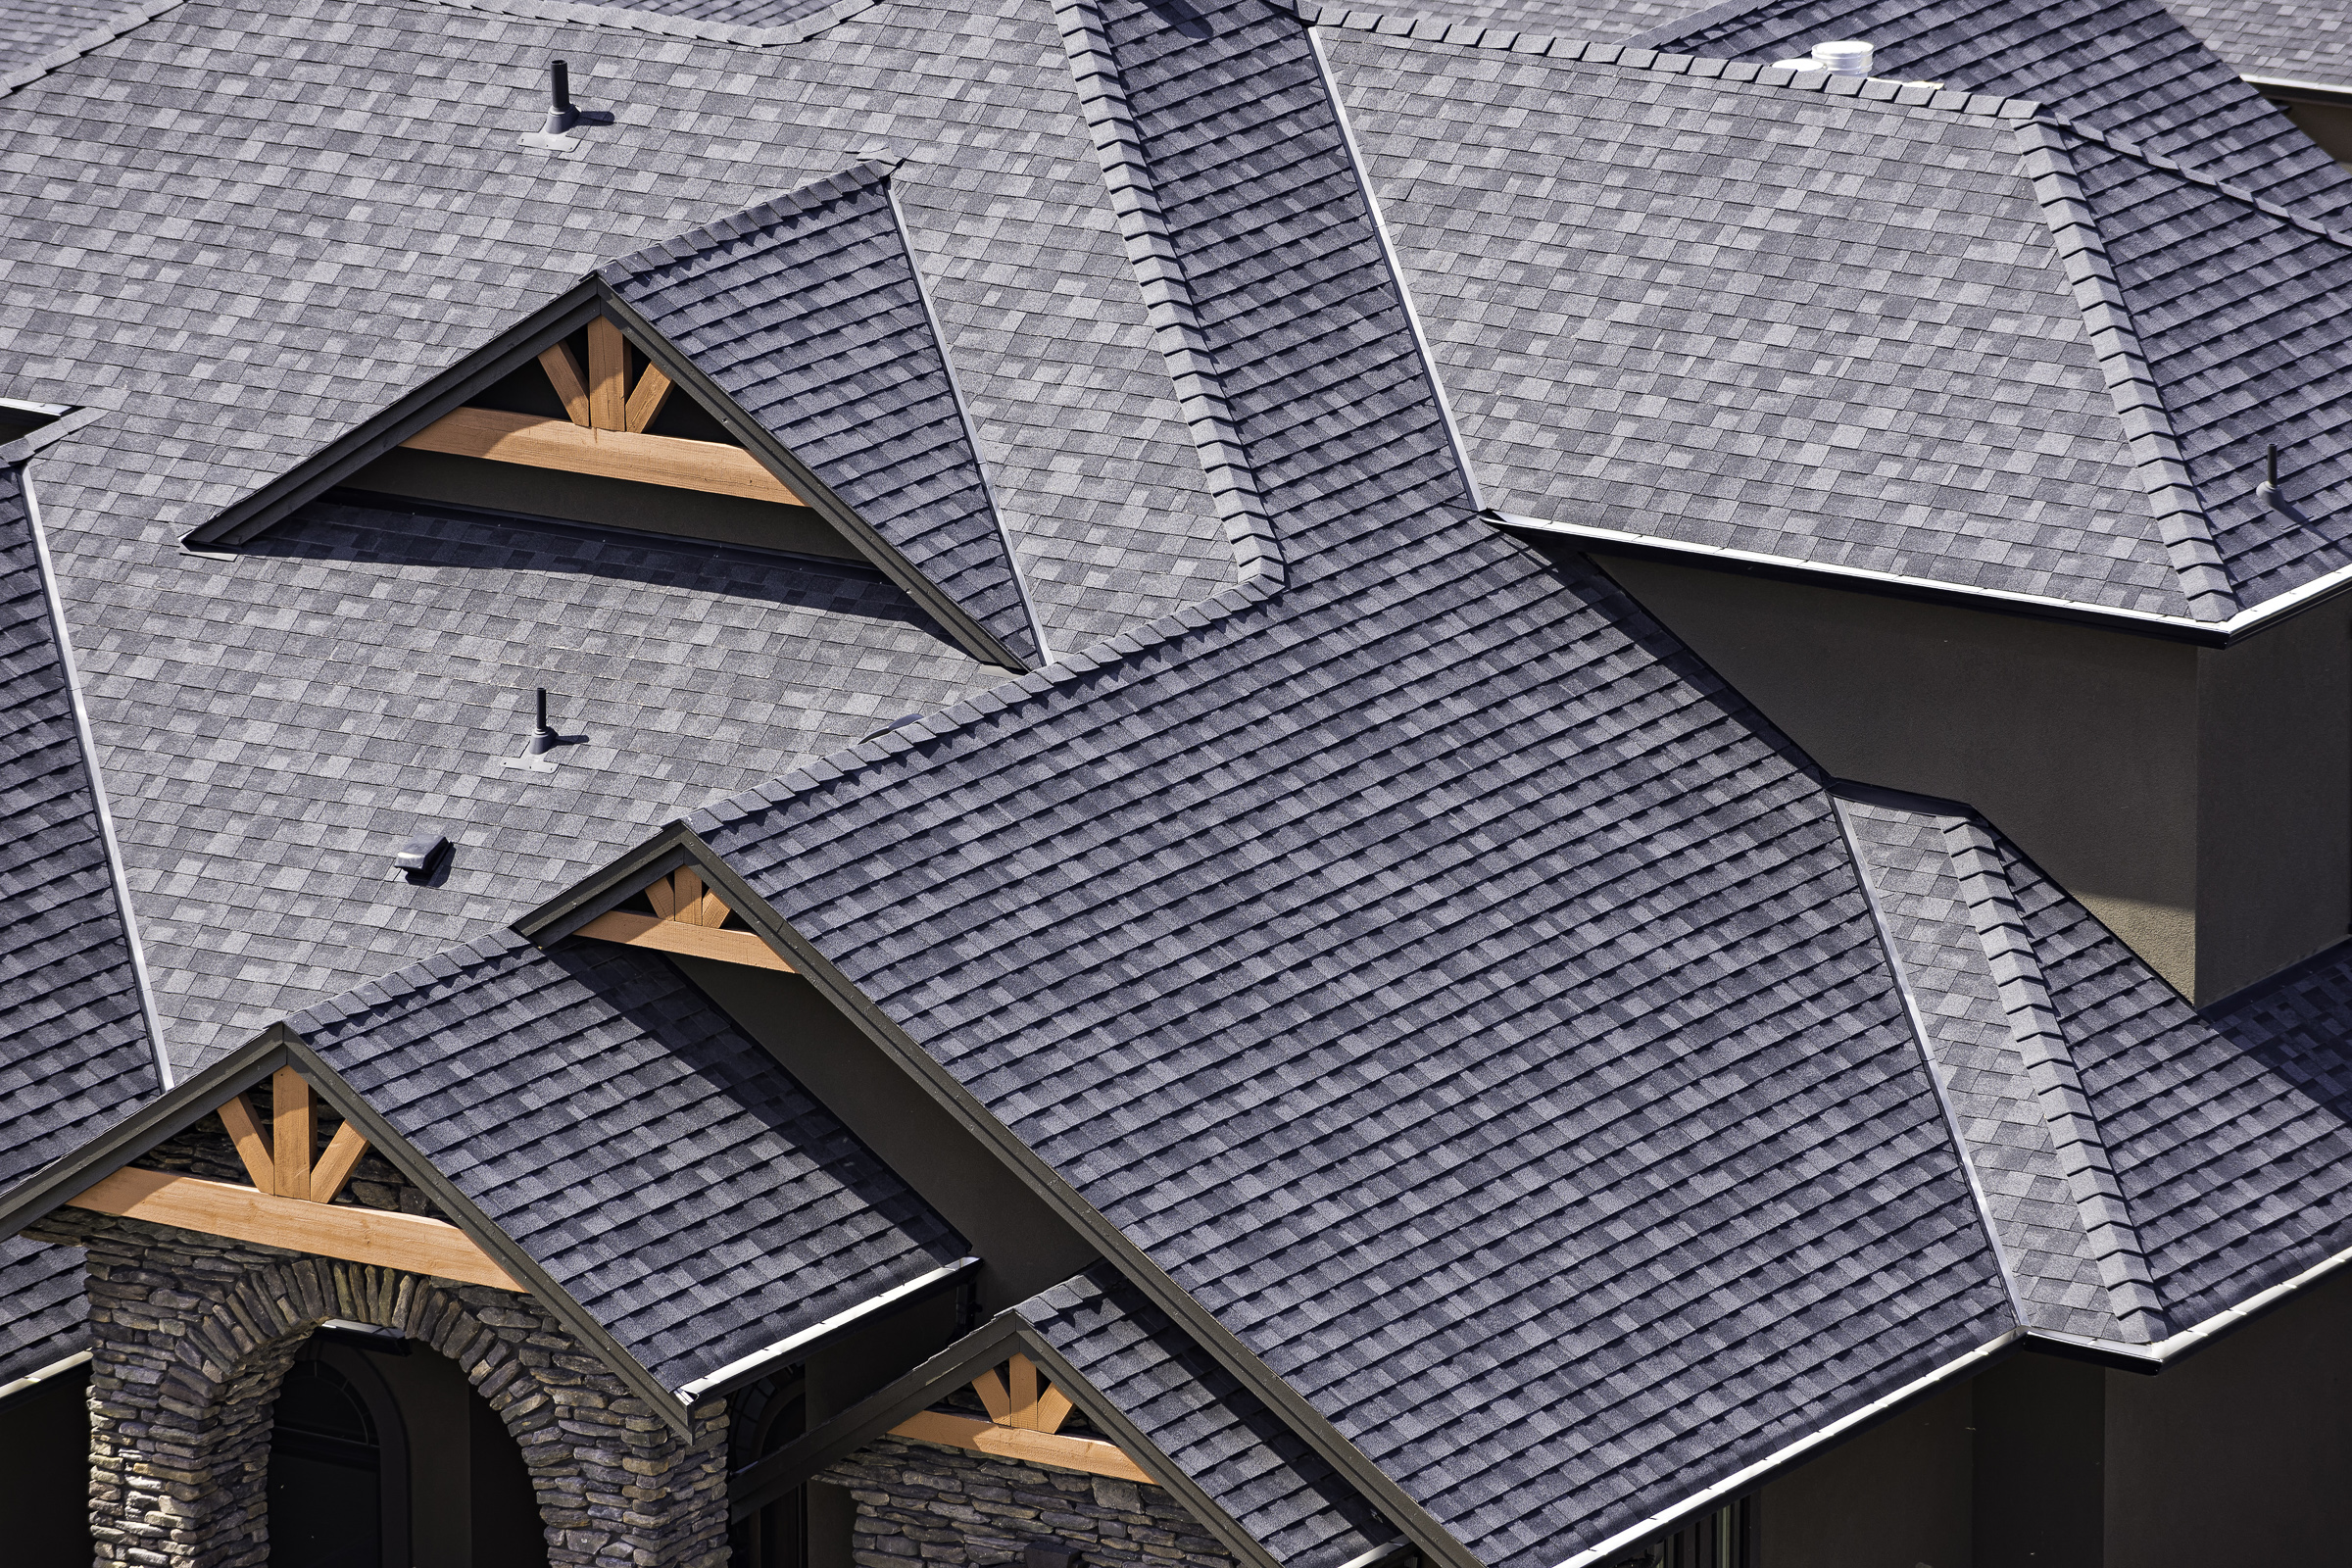 Drone aerial rooftop photo in a newly constructed subdivision in Washington, D.C. showing asphalt shingles and multiple roof lines